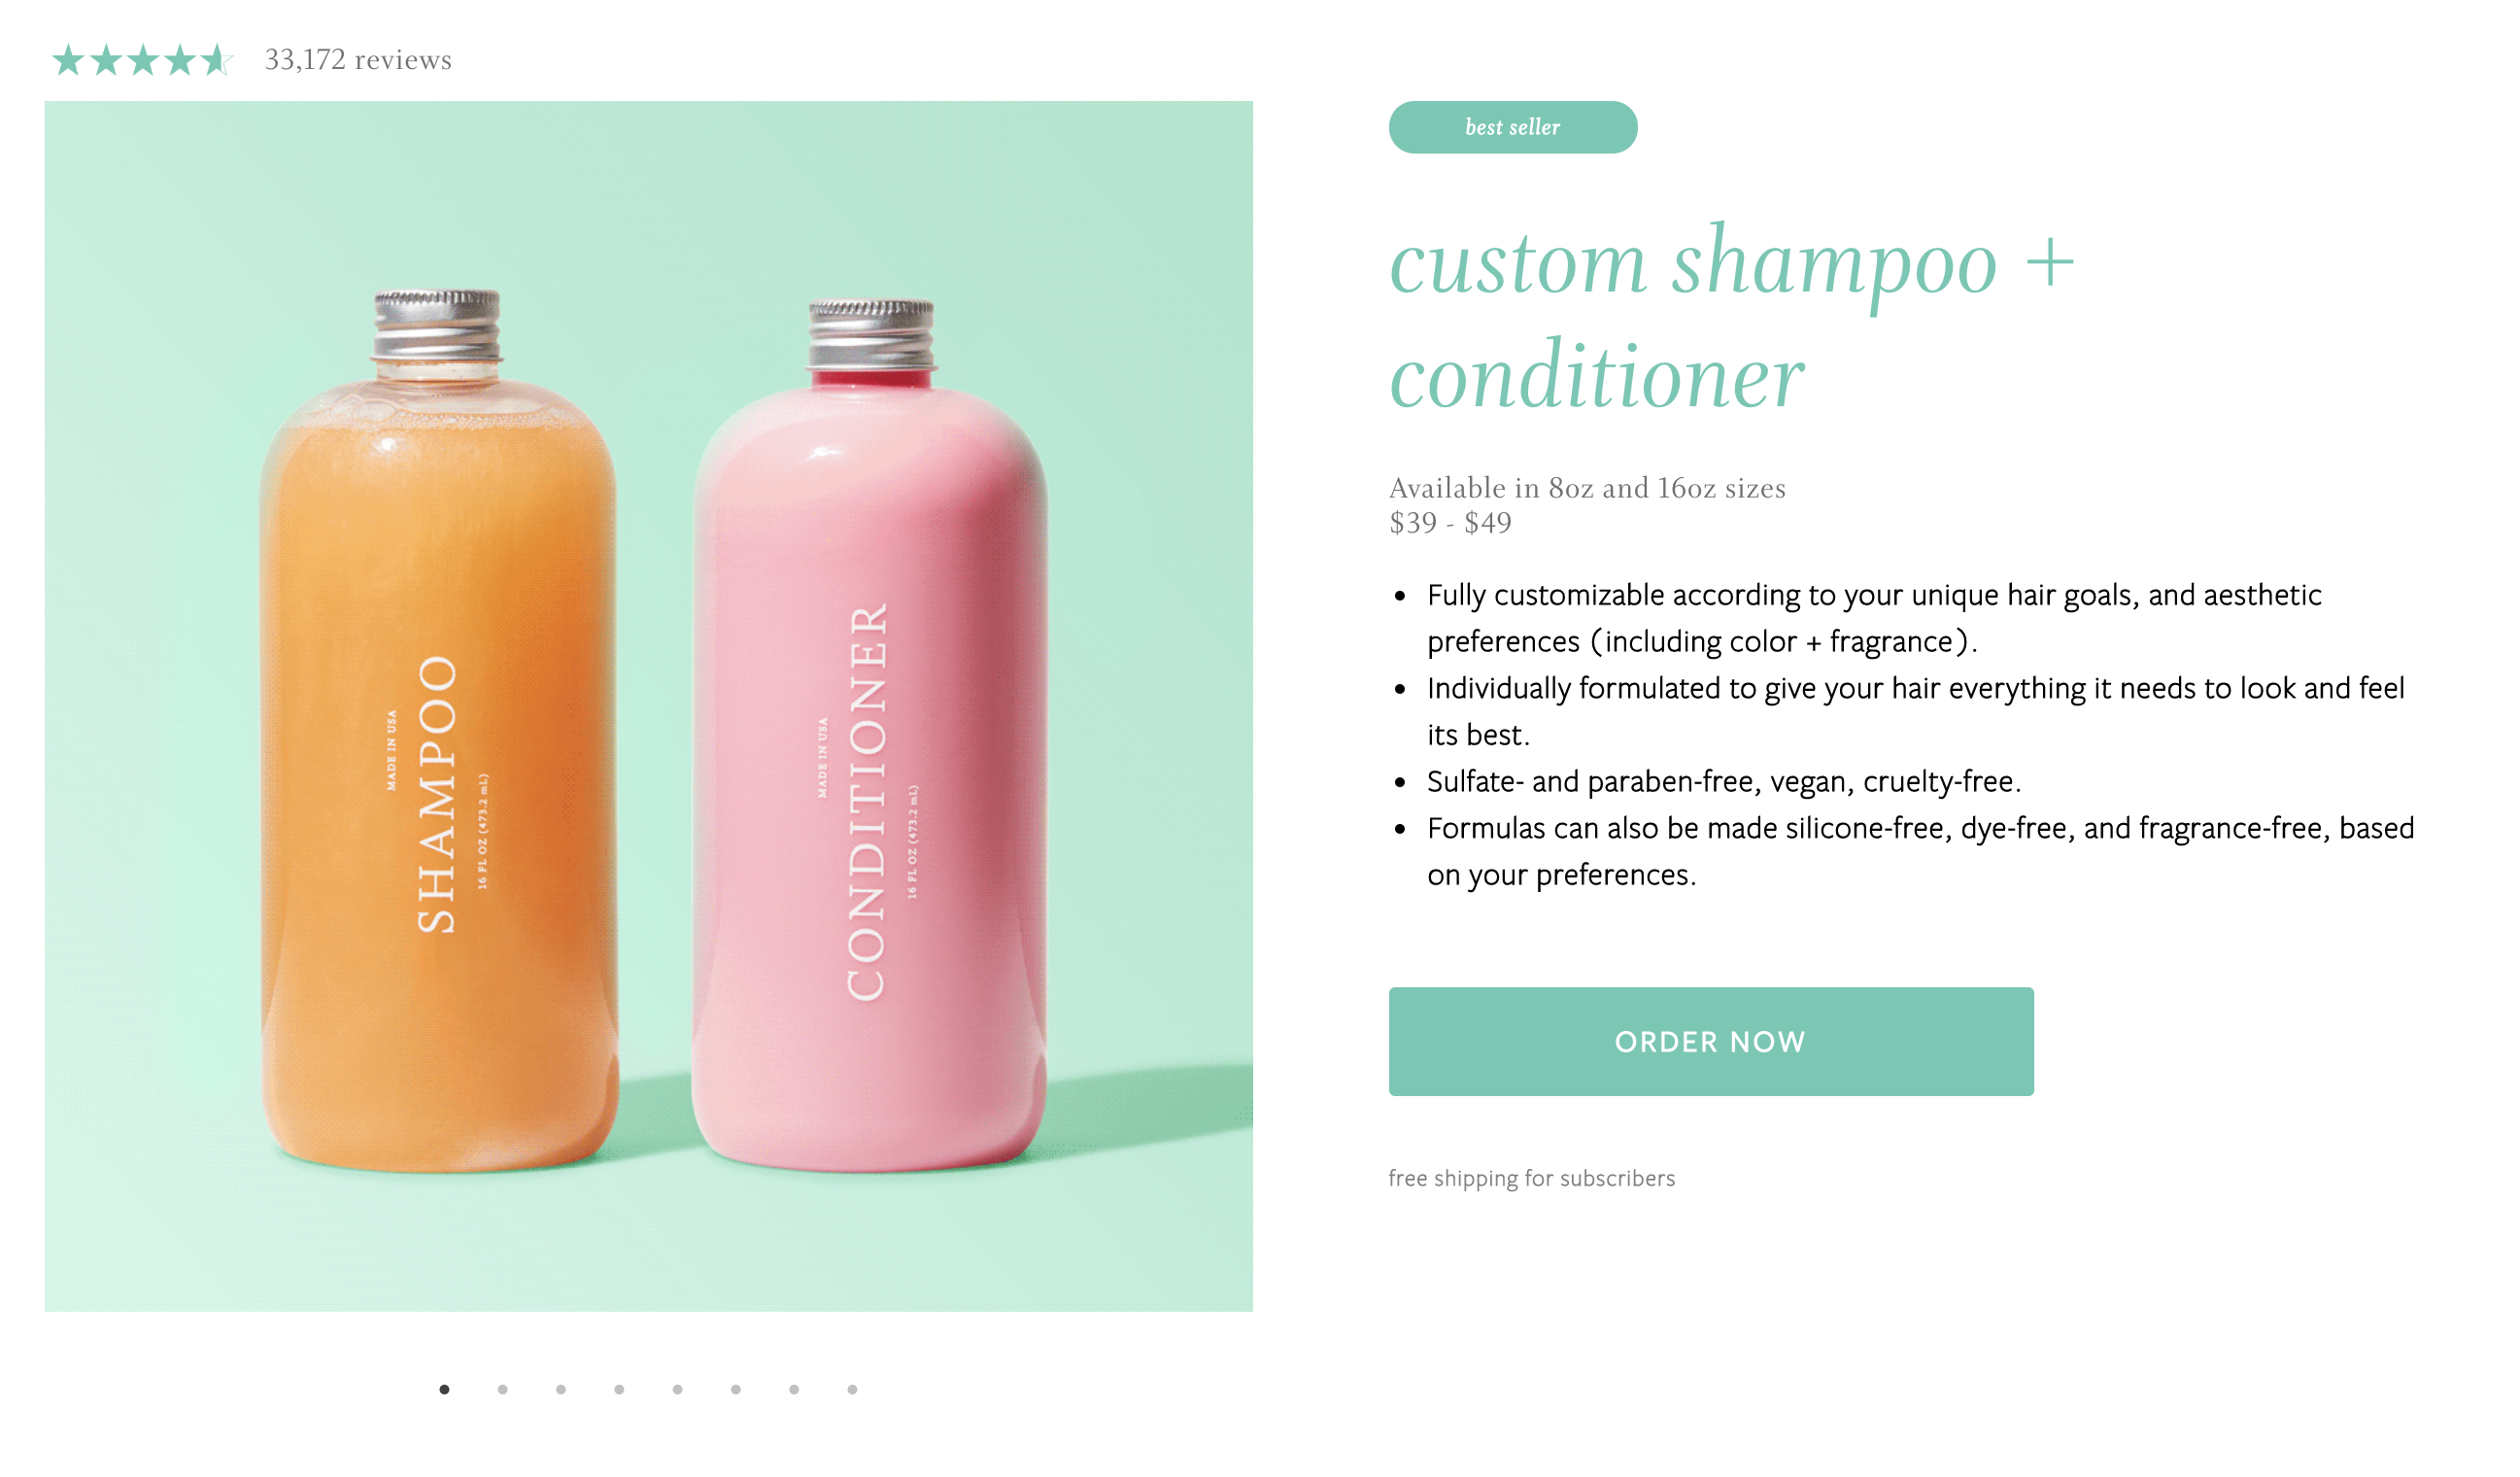 Function of Beauty's custom shampoo and conditioner product detail page.